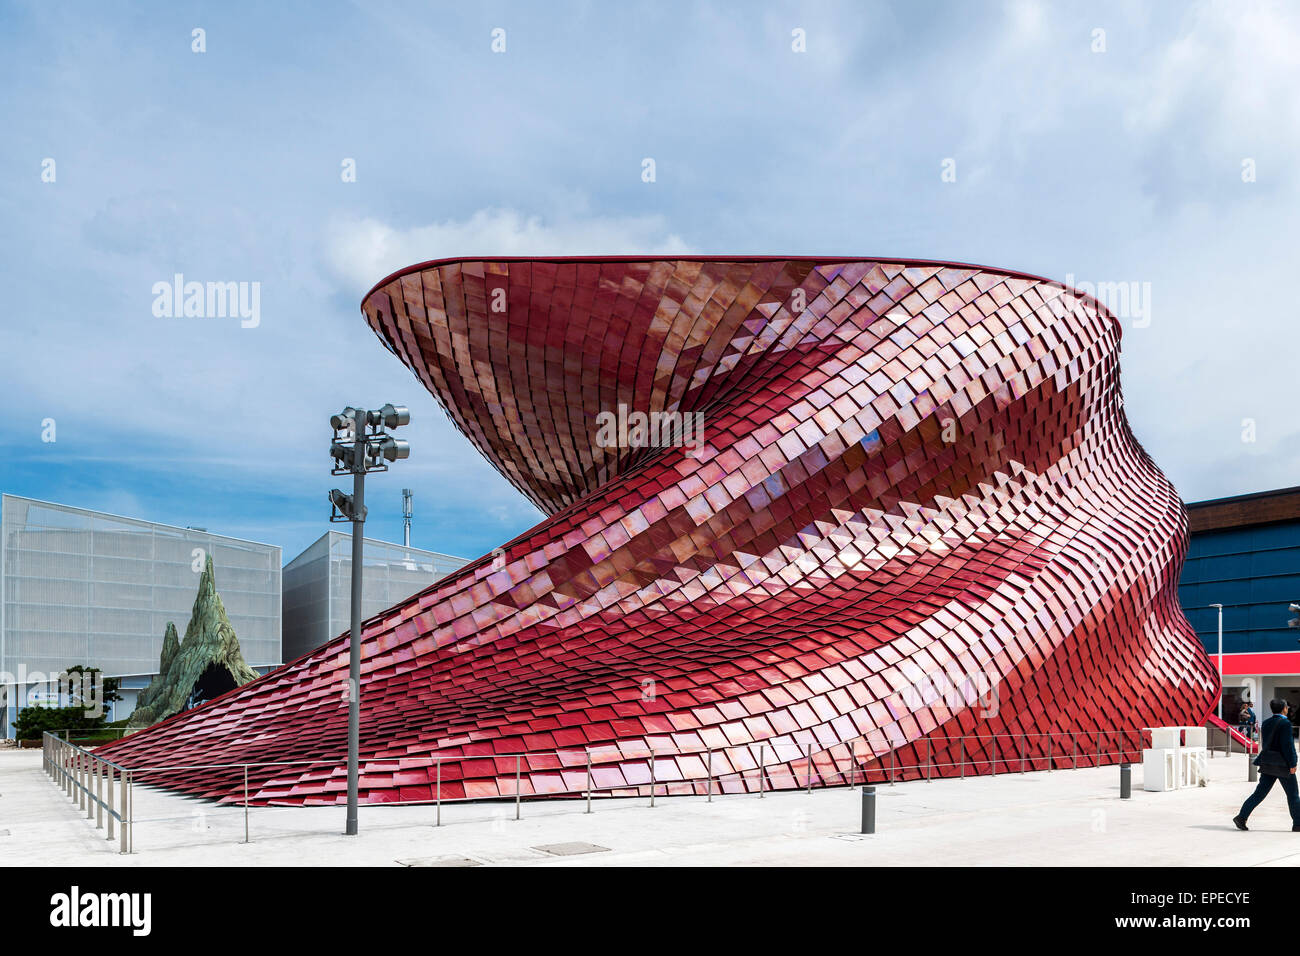 Serpentine and sculptural facade. Milan Expo 2015, Vanke Pavilion, Milan, Italy. Architect: Daniel Libeskind, 2015. - Stock Image